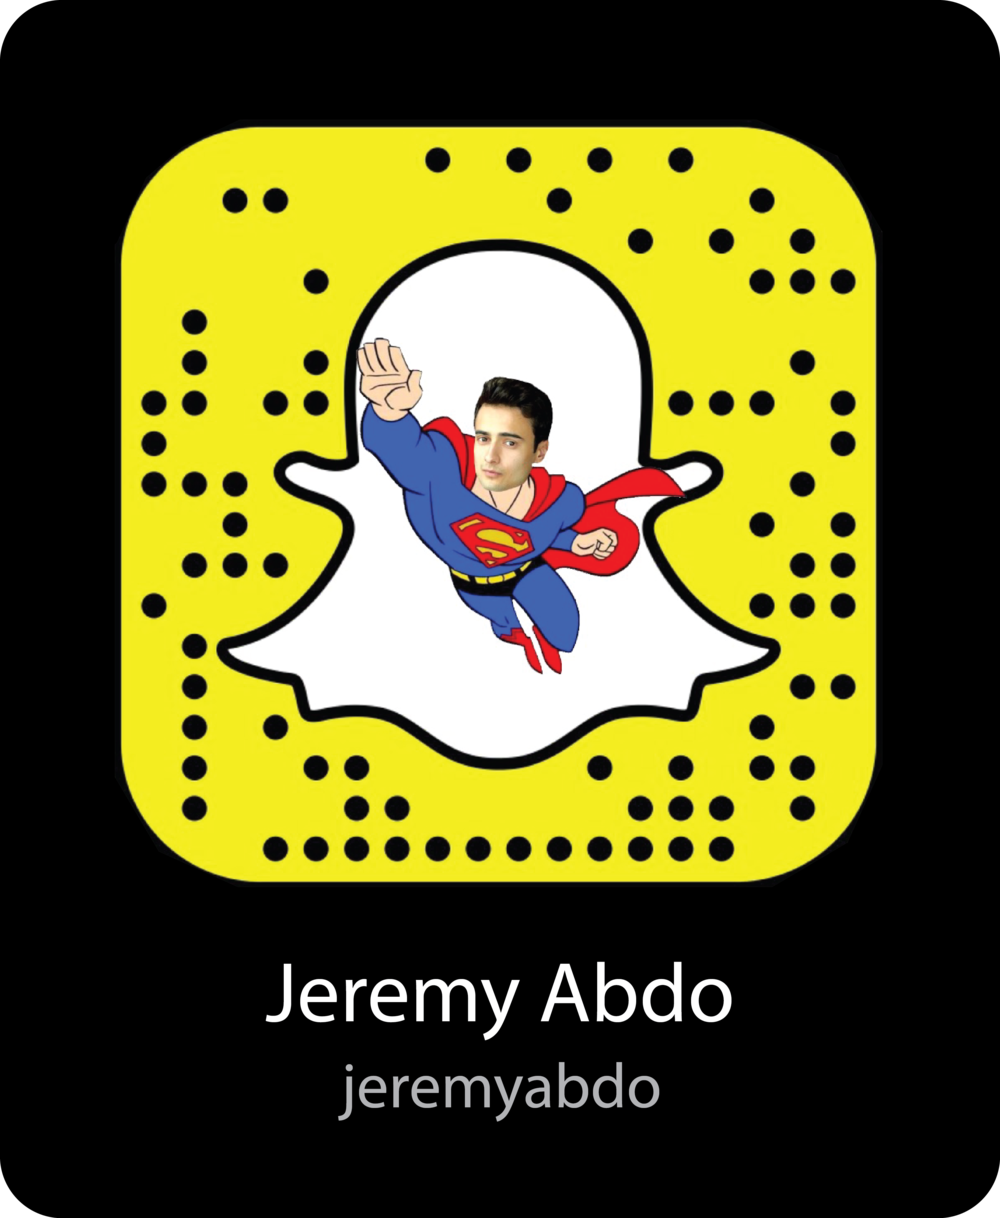 jeremy-abdo-artists-snapchat-snapcode